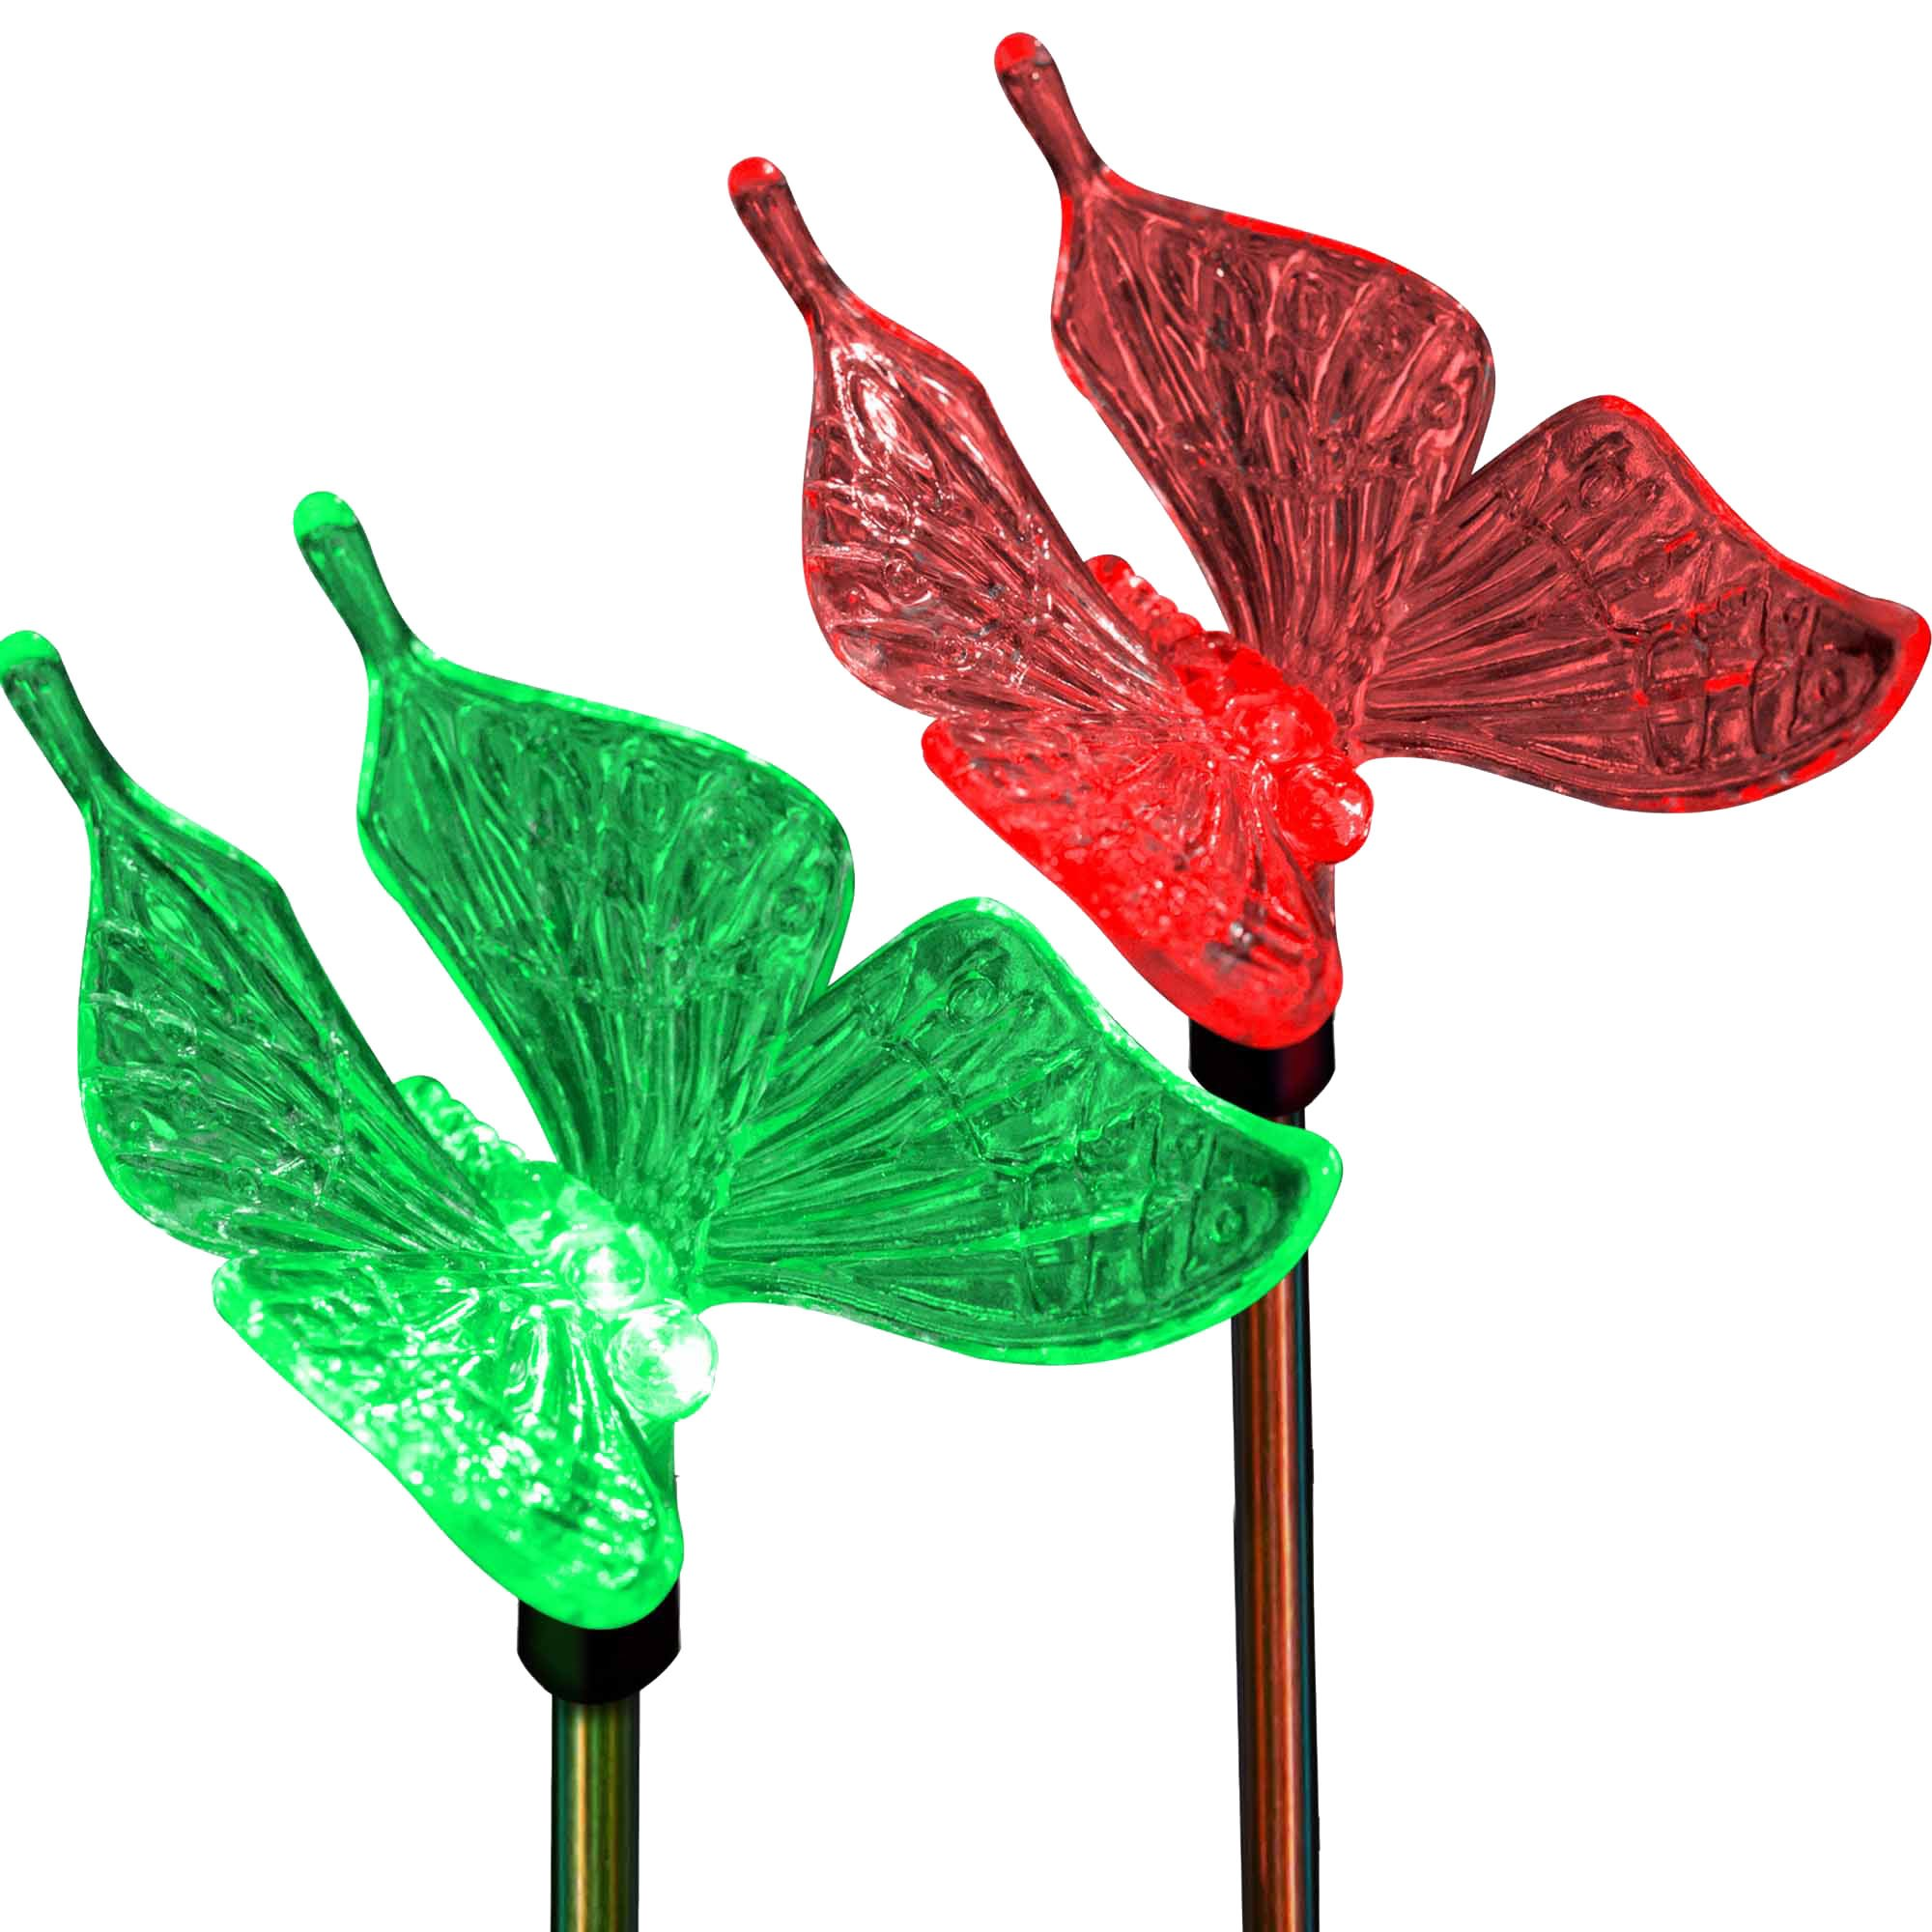 Butterfly Decor Outdoor Holiday LED Lighting Solar Garden Stake Lights Color Changing in-Ground 3D Fixture for Christmas Thanksgiving Patio Yard Lawn Decoration (2 Pack)